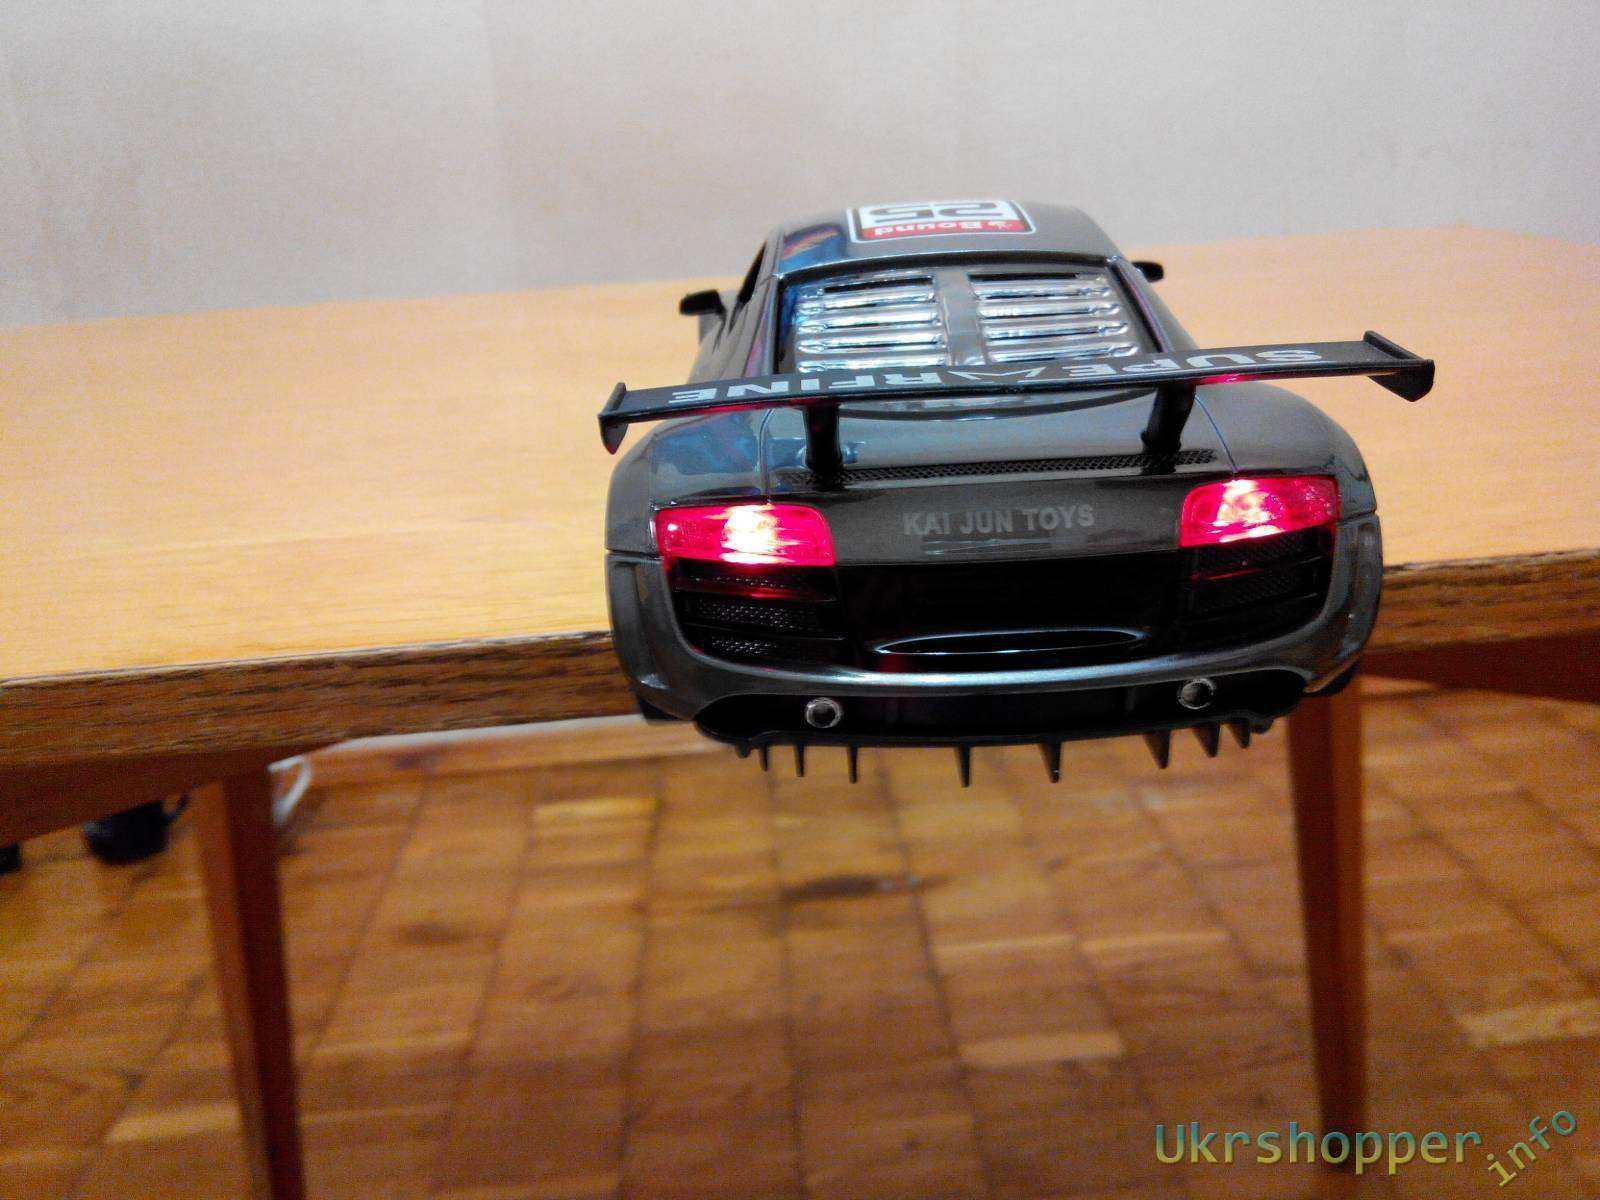 EachBuyer: Wireless RC Remote Control Rechargeable Race Racing Car Vehicle или как я Audi r8 пригнал )